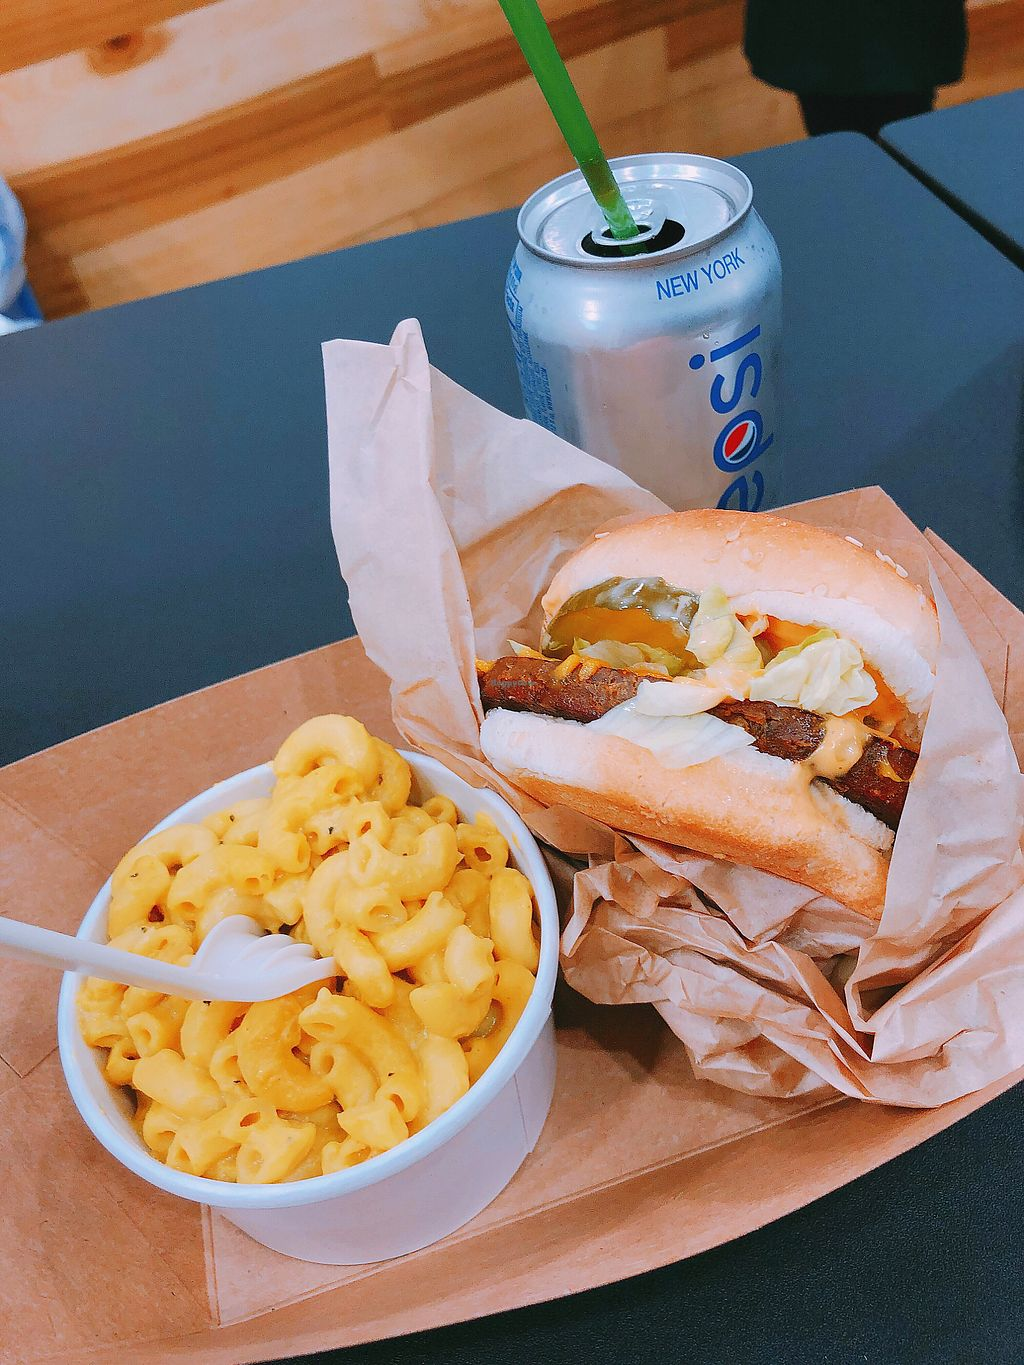 """Photo of Marty's V Burger  by <a href=""""/members/profile/janitajasmin"""">janitajasmin</a> <br/>World famous burger with mac n cheese <br/> March 13, 2018  - <a href='/contact/abuse/image/96798/370130'>Report</a>"""